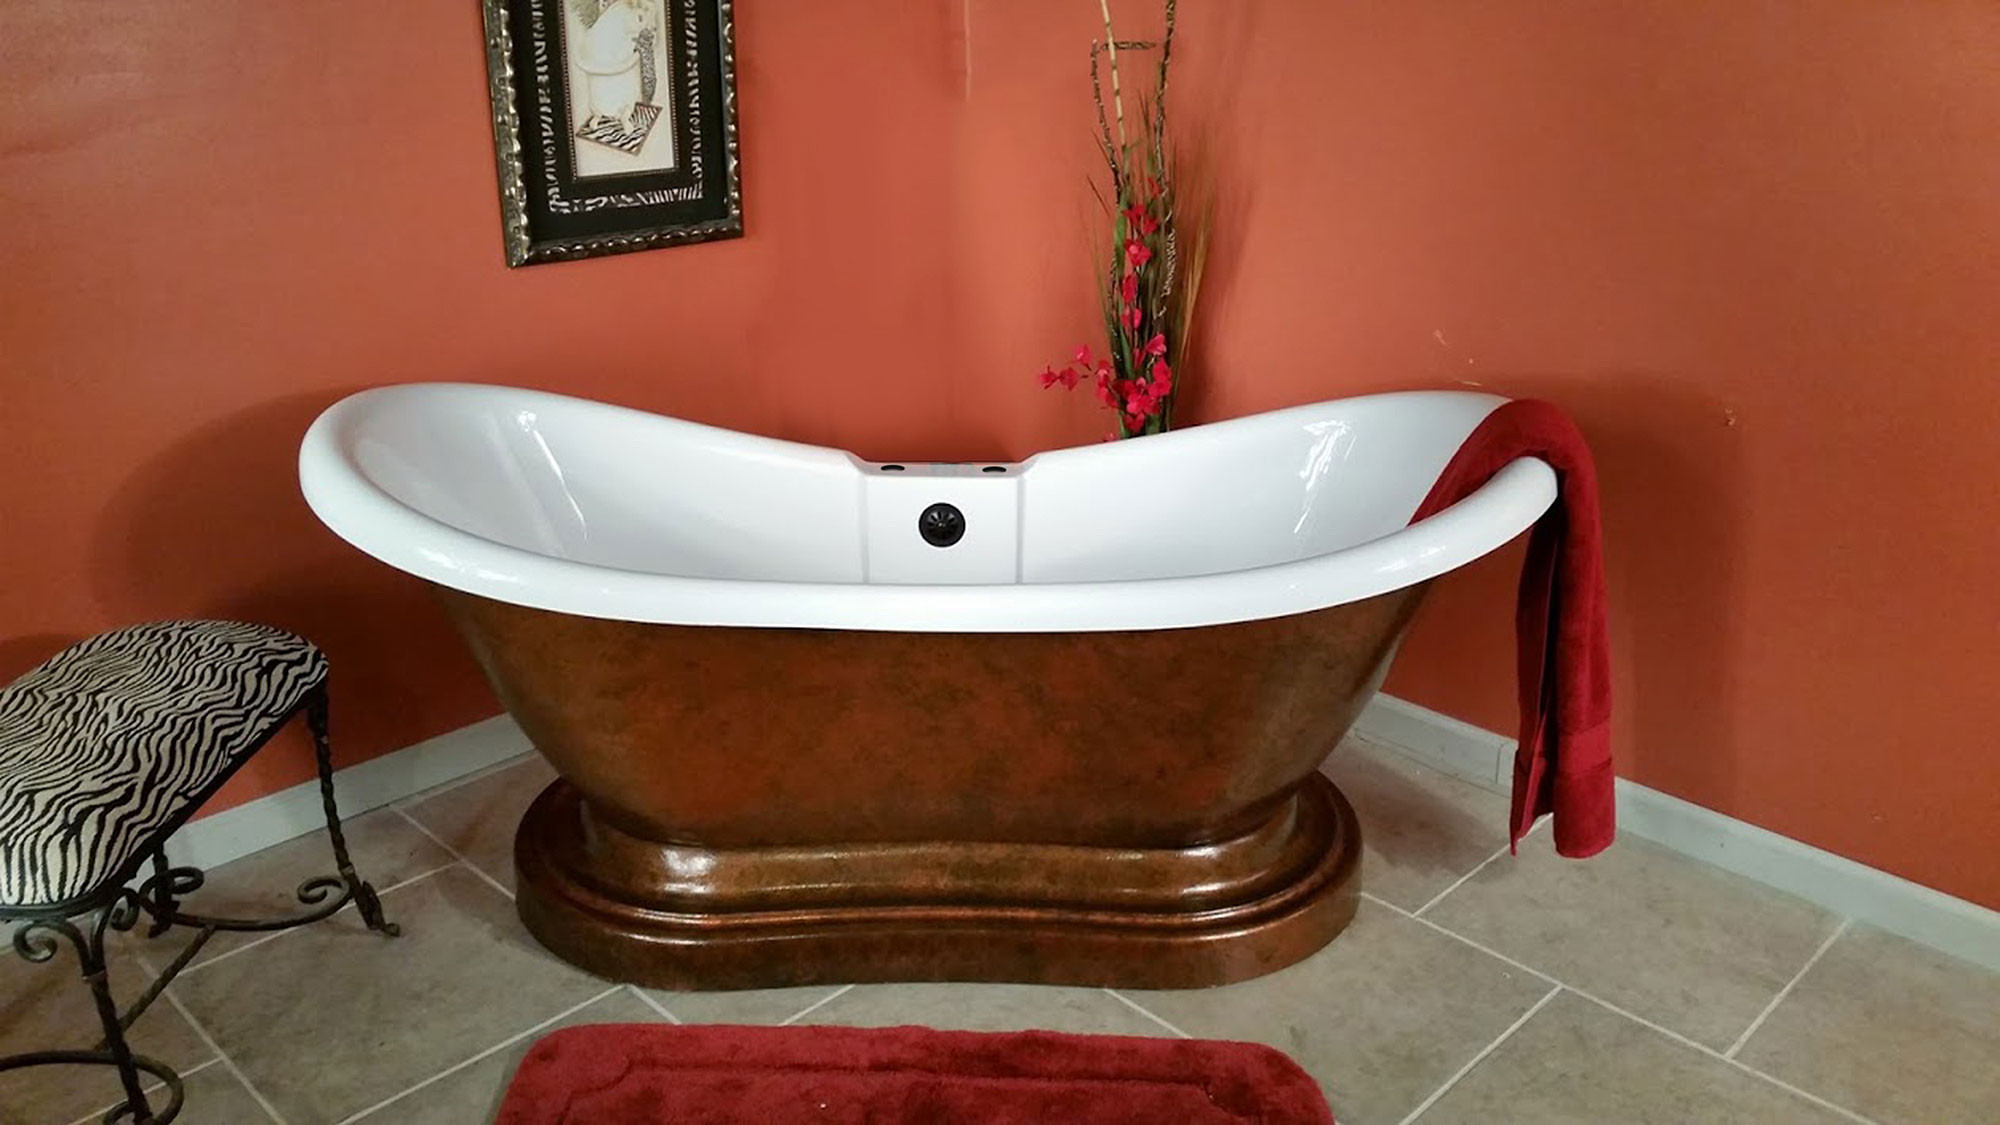 Cambridge ADES-PED-DH-CB Double Ended Pedestal Tub With Faucet Drillings